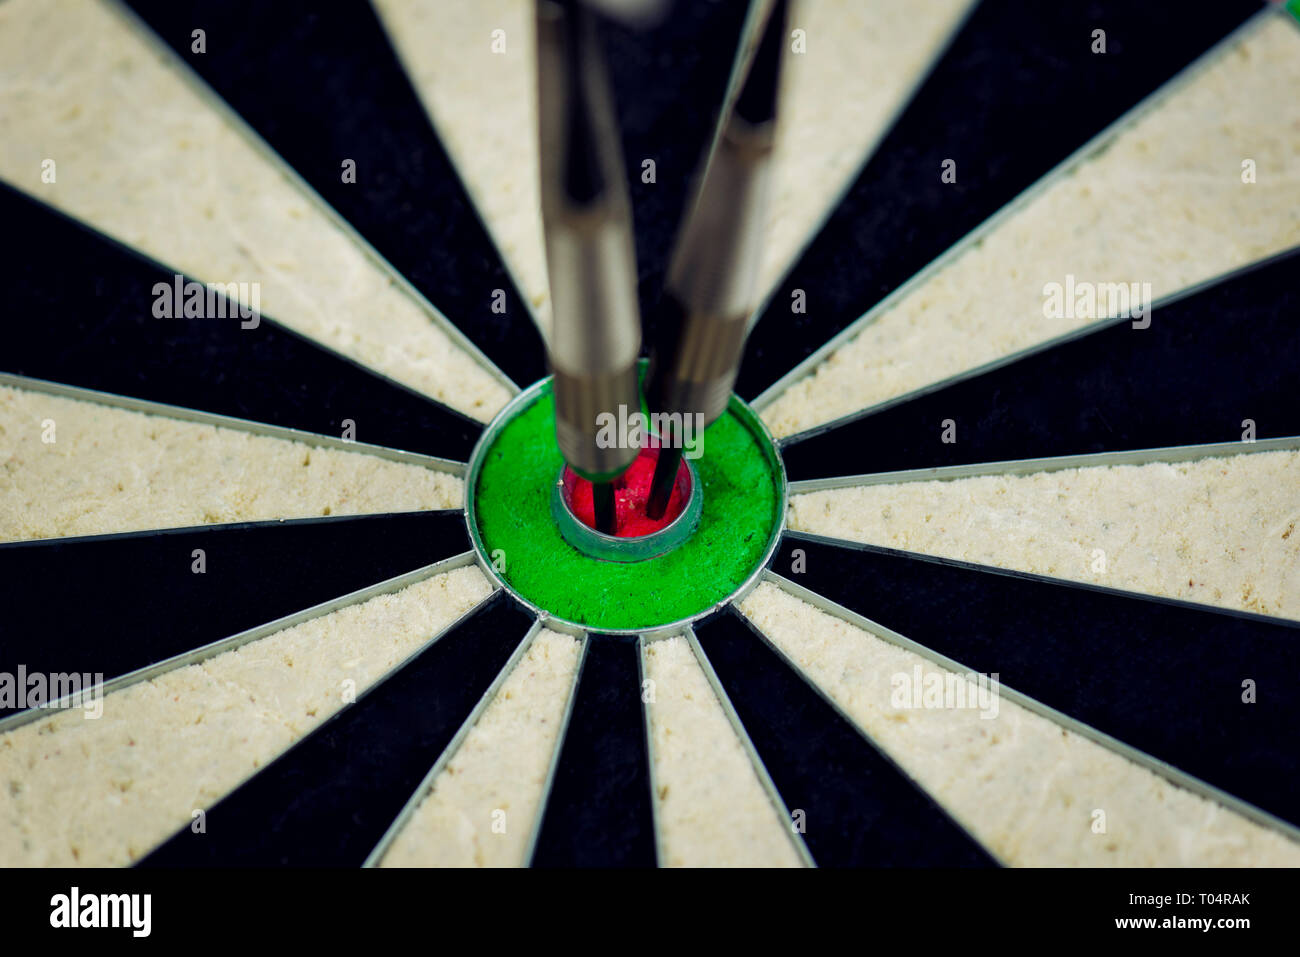 three darts thrown at the bulls eye of a dartboard Stock Photo